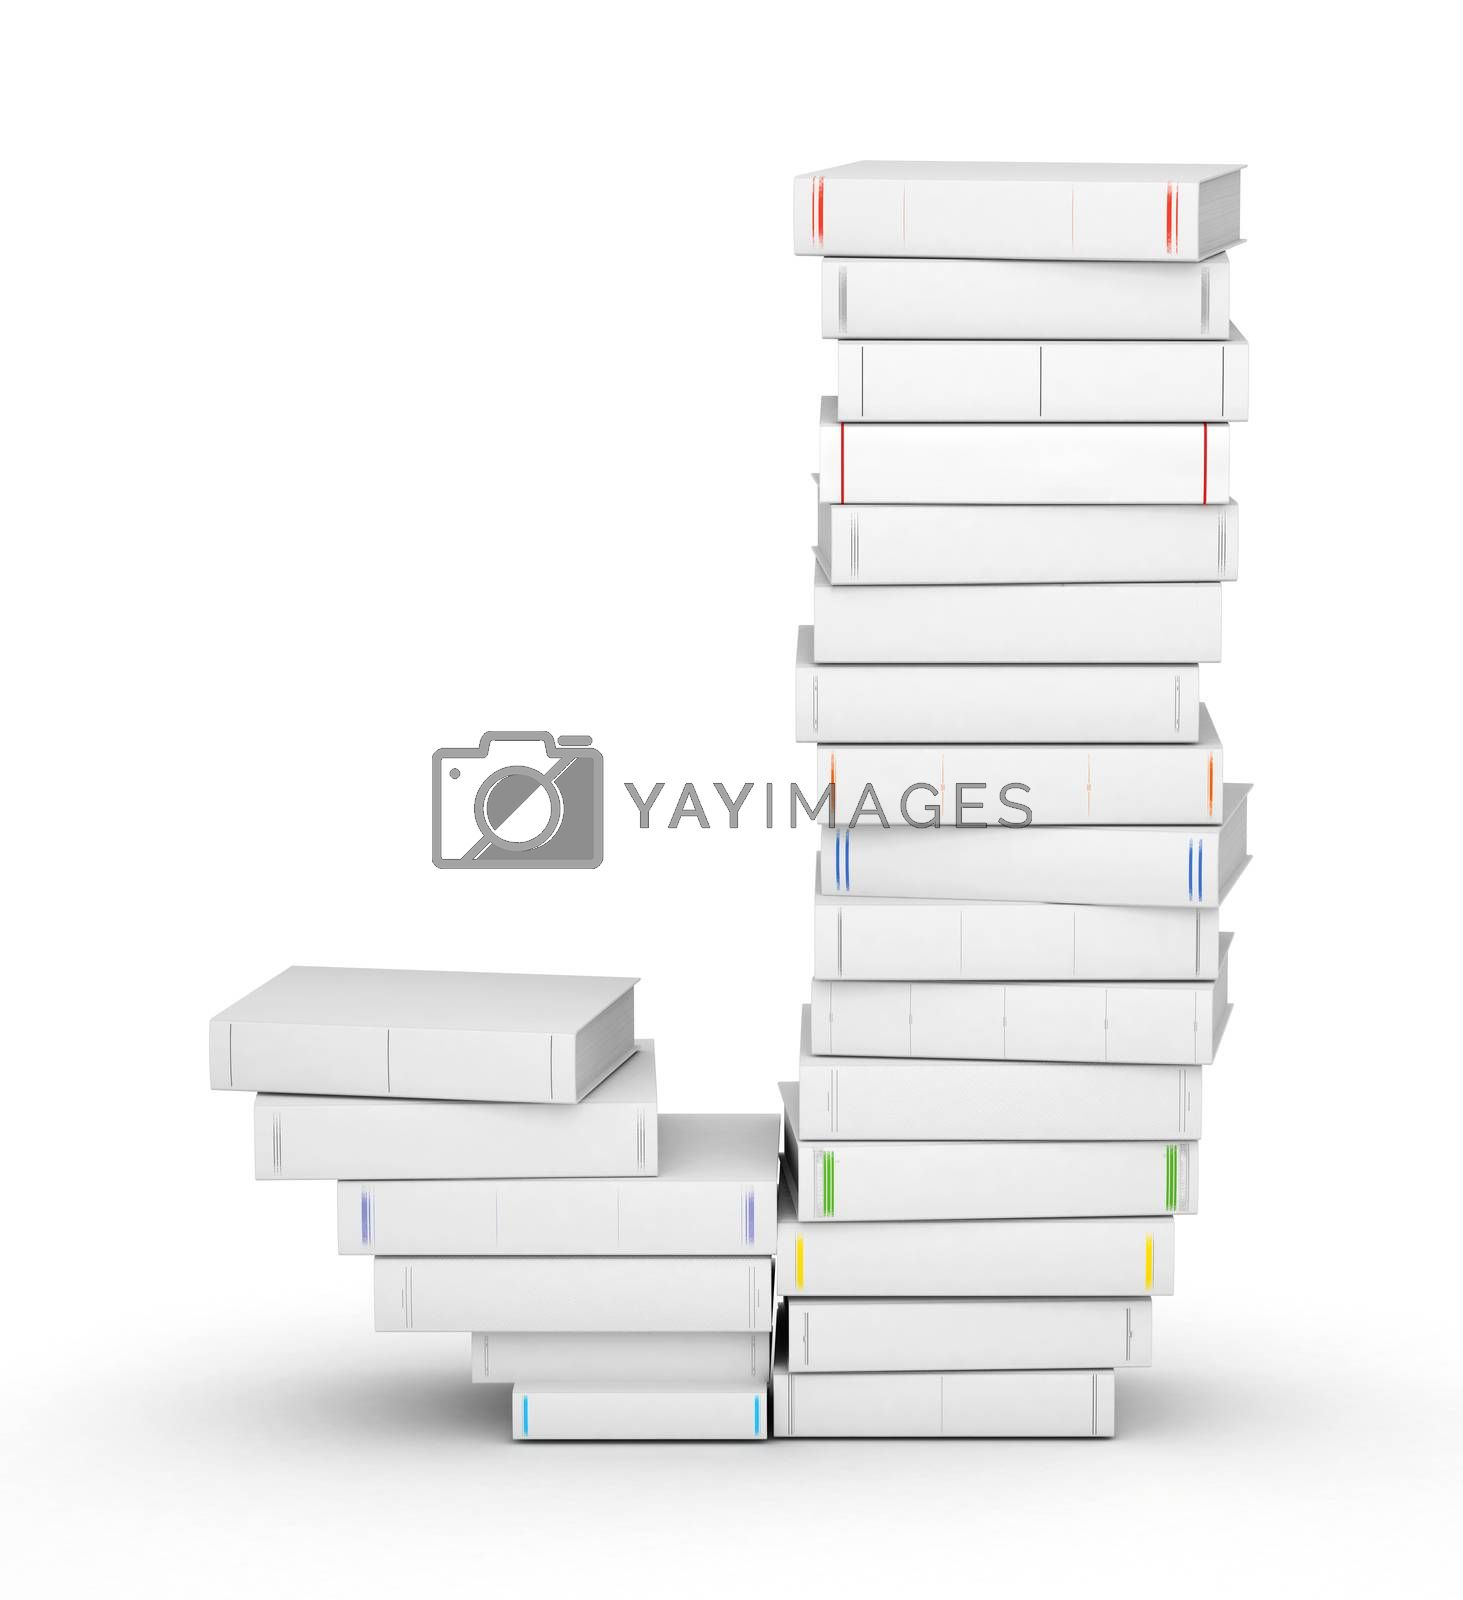 Royalty free image of Letter J, stacked from blank books by iunewind